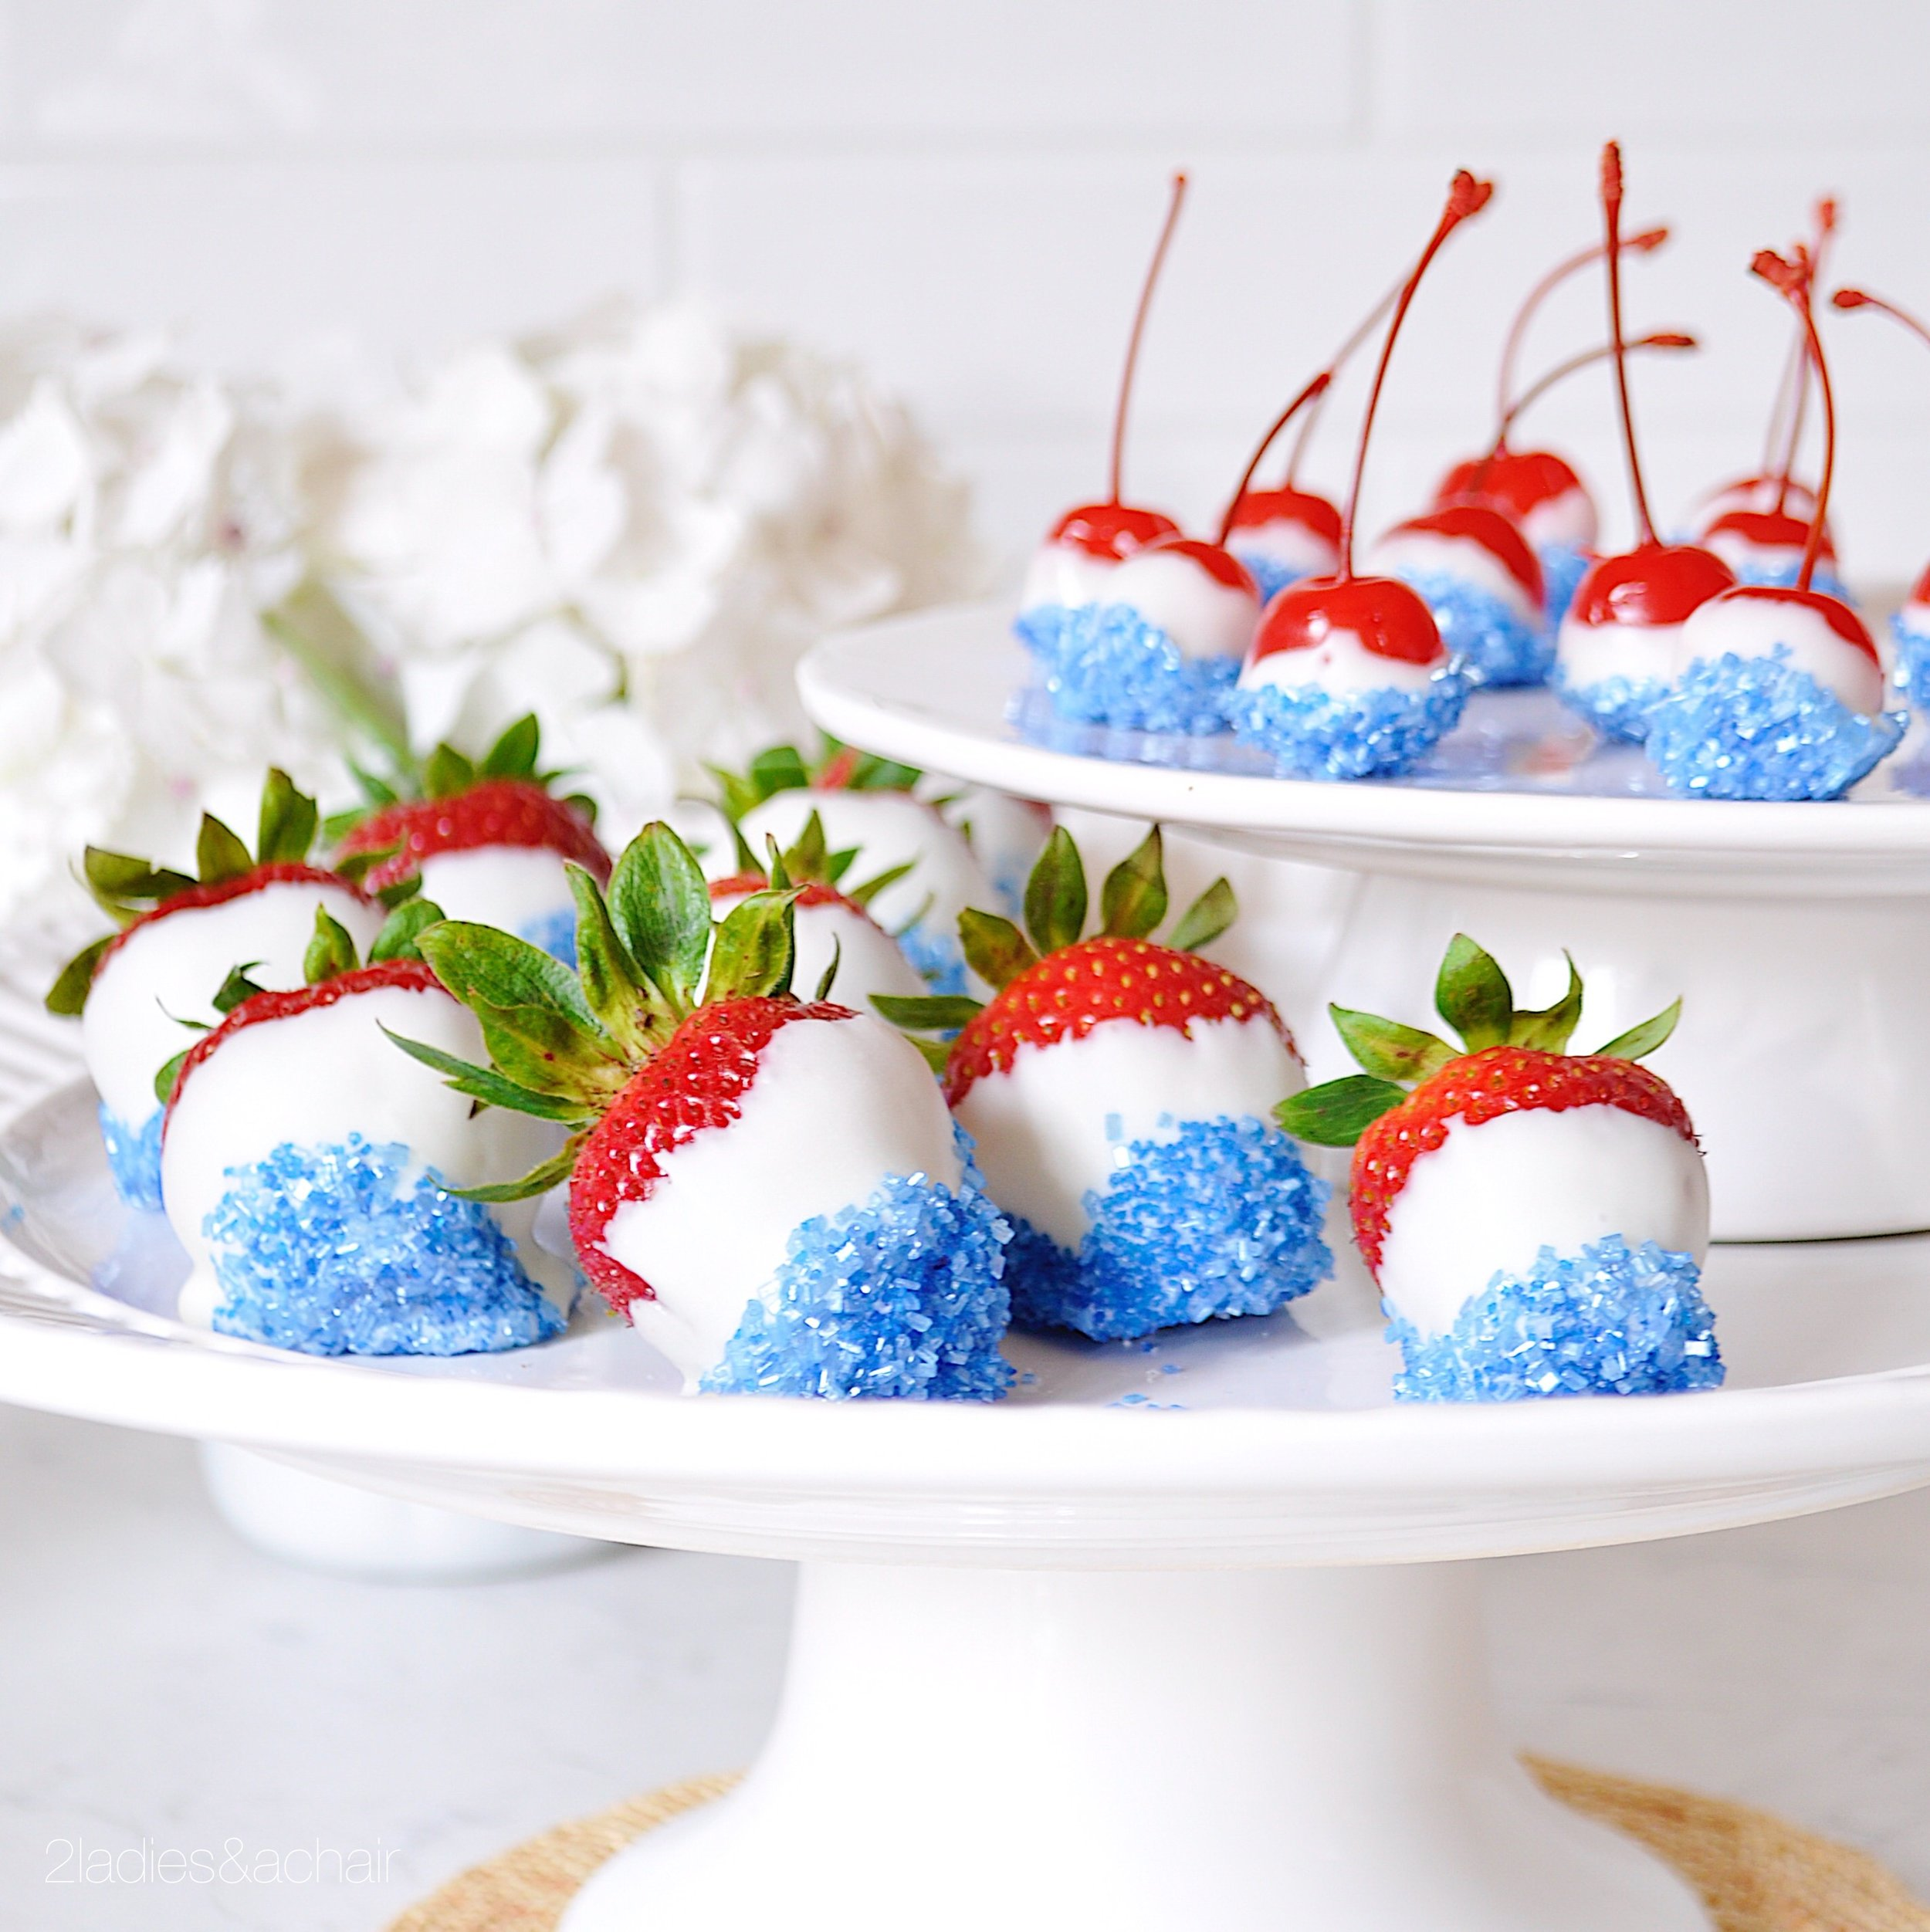 july 4th party ideas IMG_1025.JPG